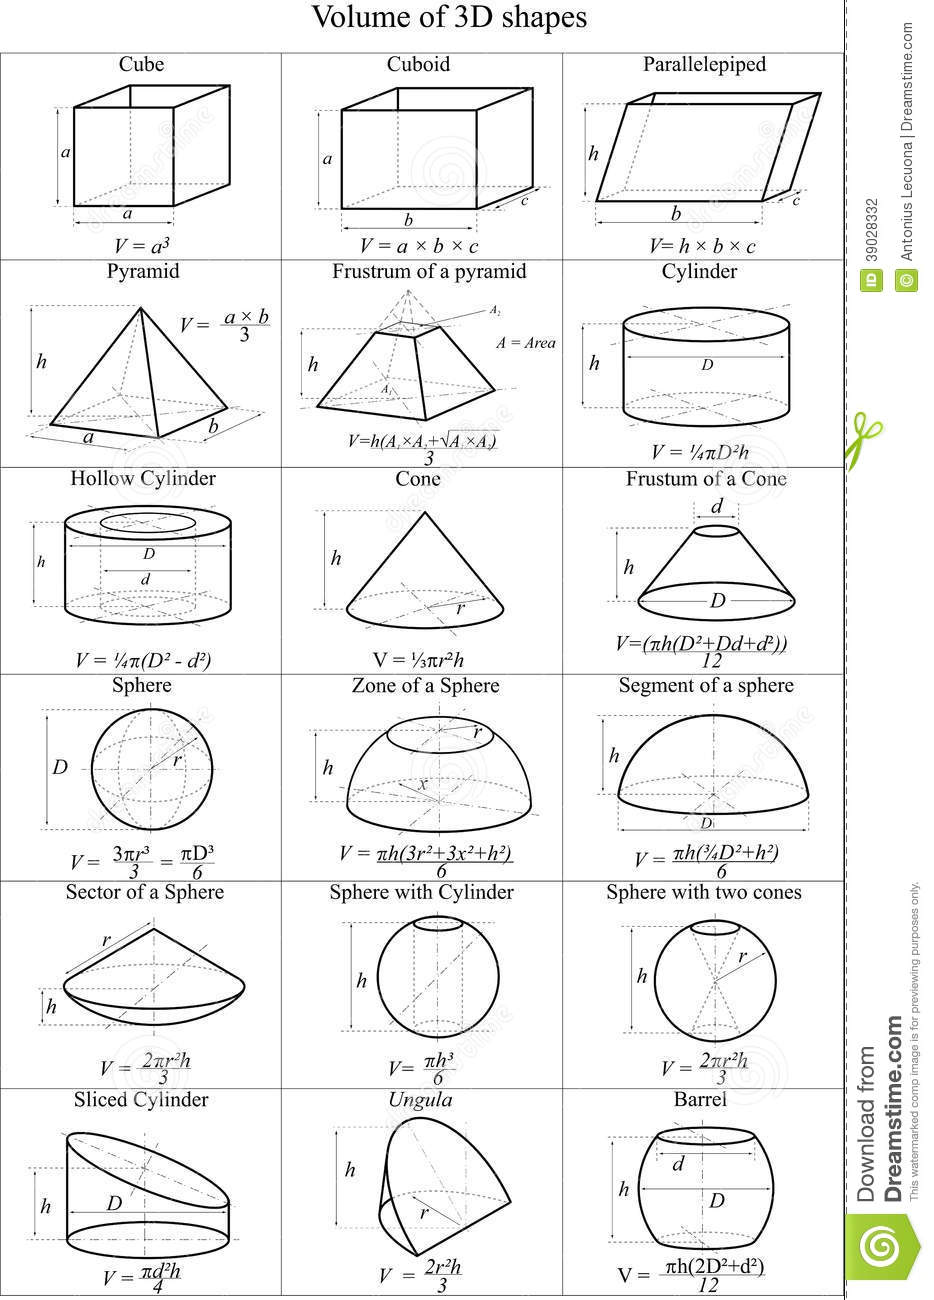 volume of 3d shapes